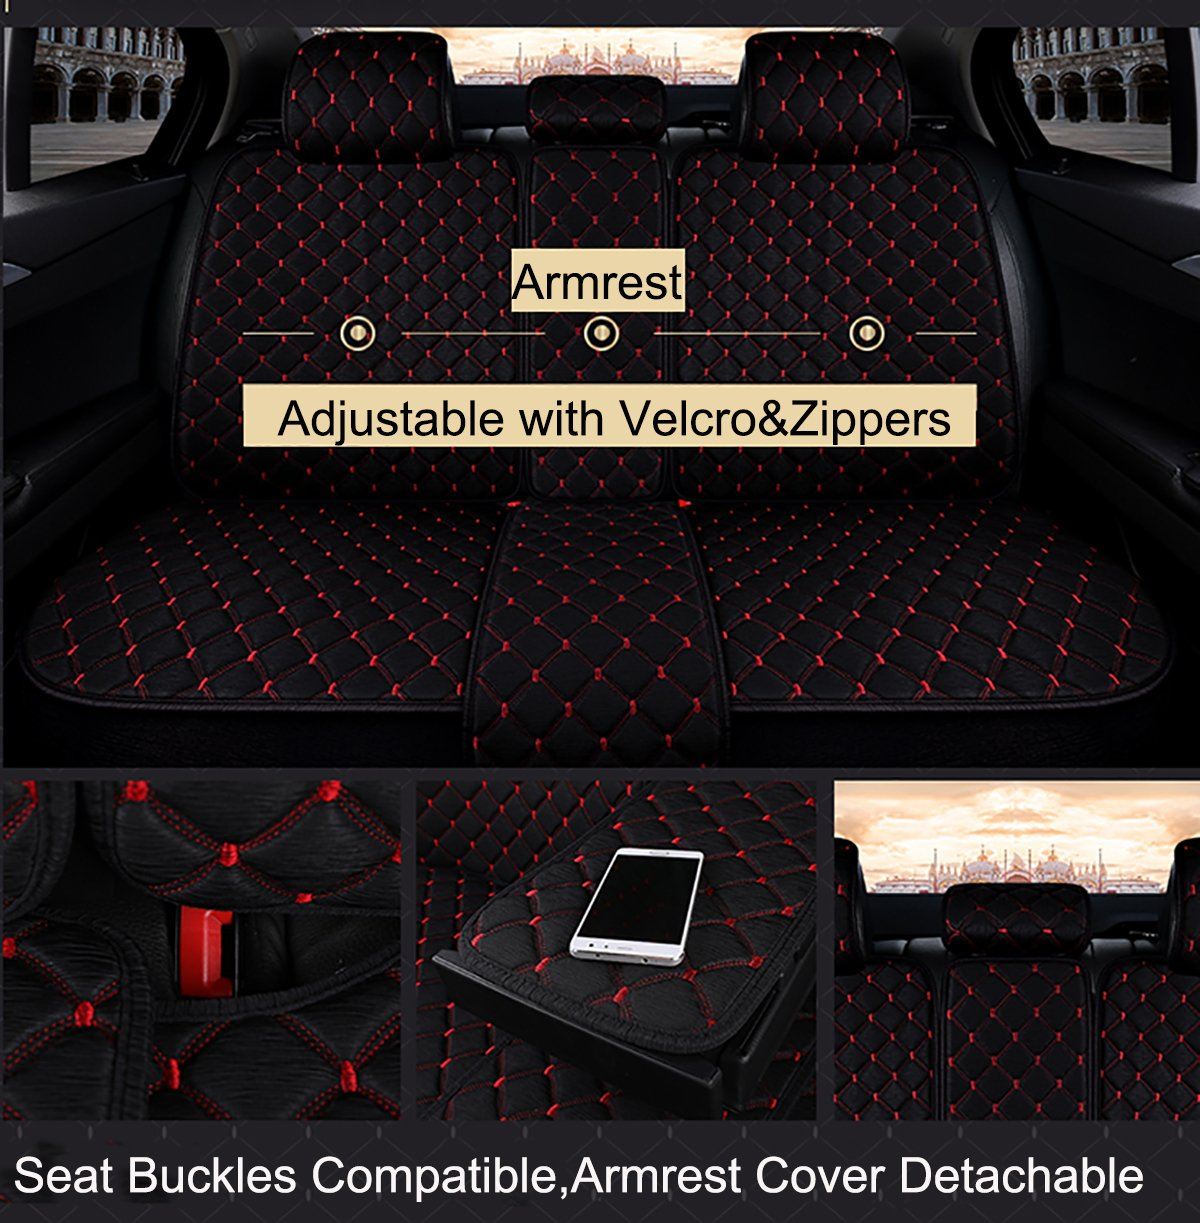 INCH EMPIRE Anti Slip Car Seat Cover Full Set Cloth Universal Fit Front and Back Breathable Dirty Proof Fabric Cushion-Adjustable Bench for 95% Types of 5 Seats Cars(Black with Red Stitch Grid) by INCH EMPIRE (Image #7)